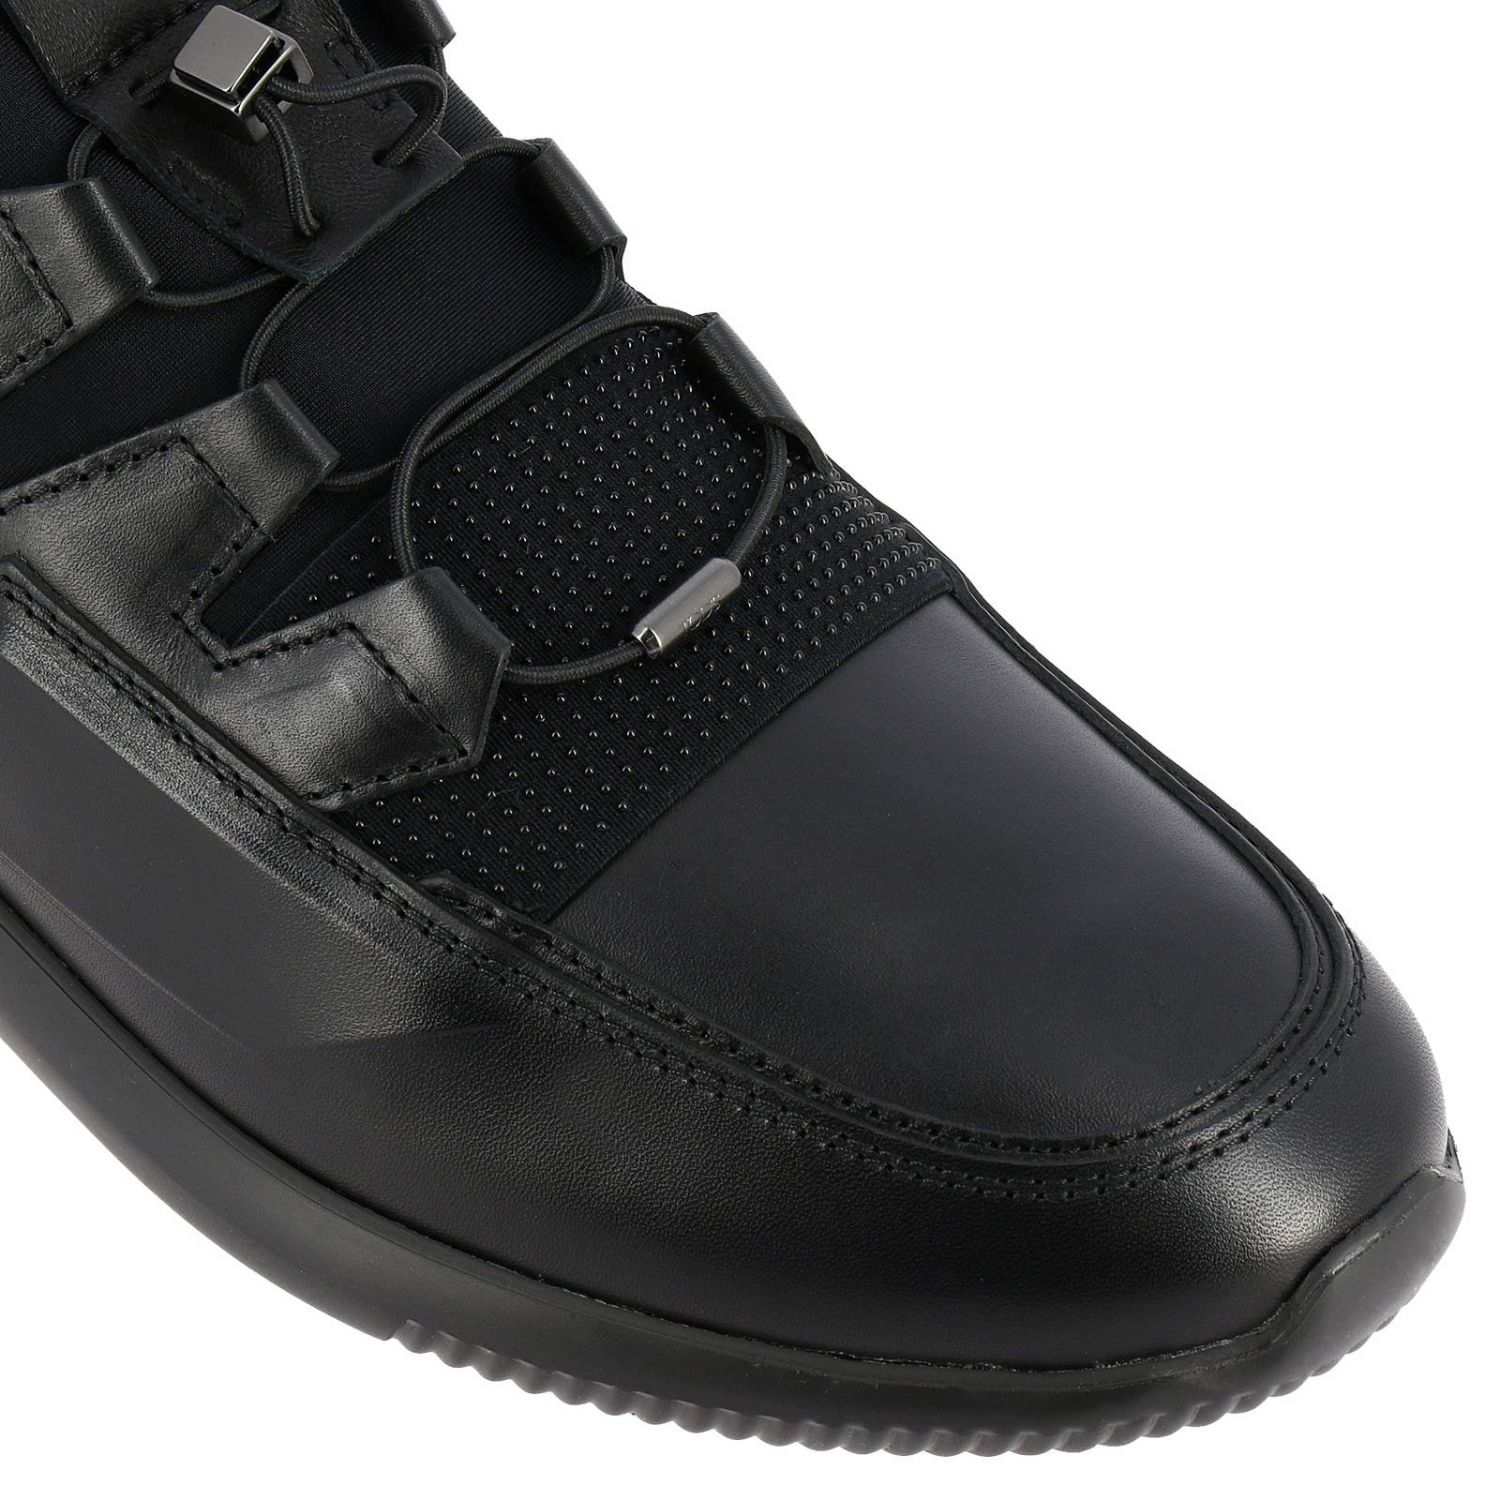 No code Active Sport Tod's sneakers in suede and neoprene leather with elastic laces black 3